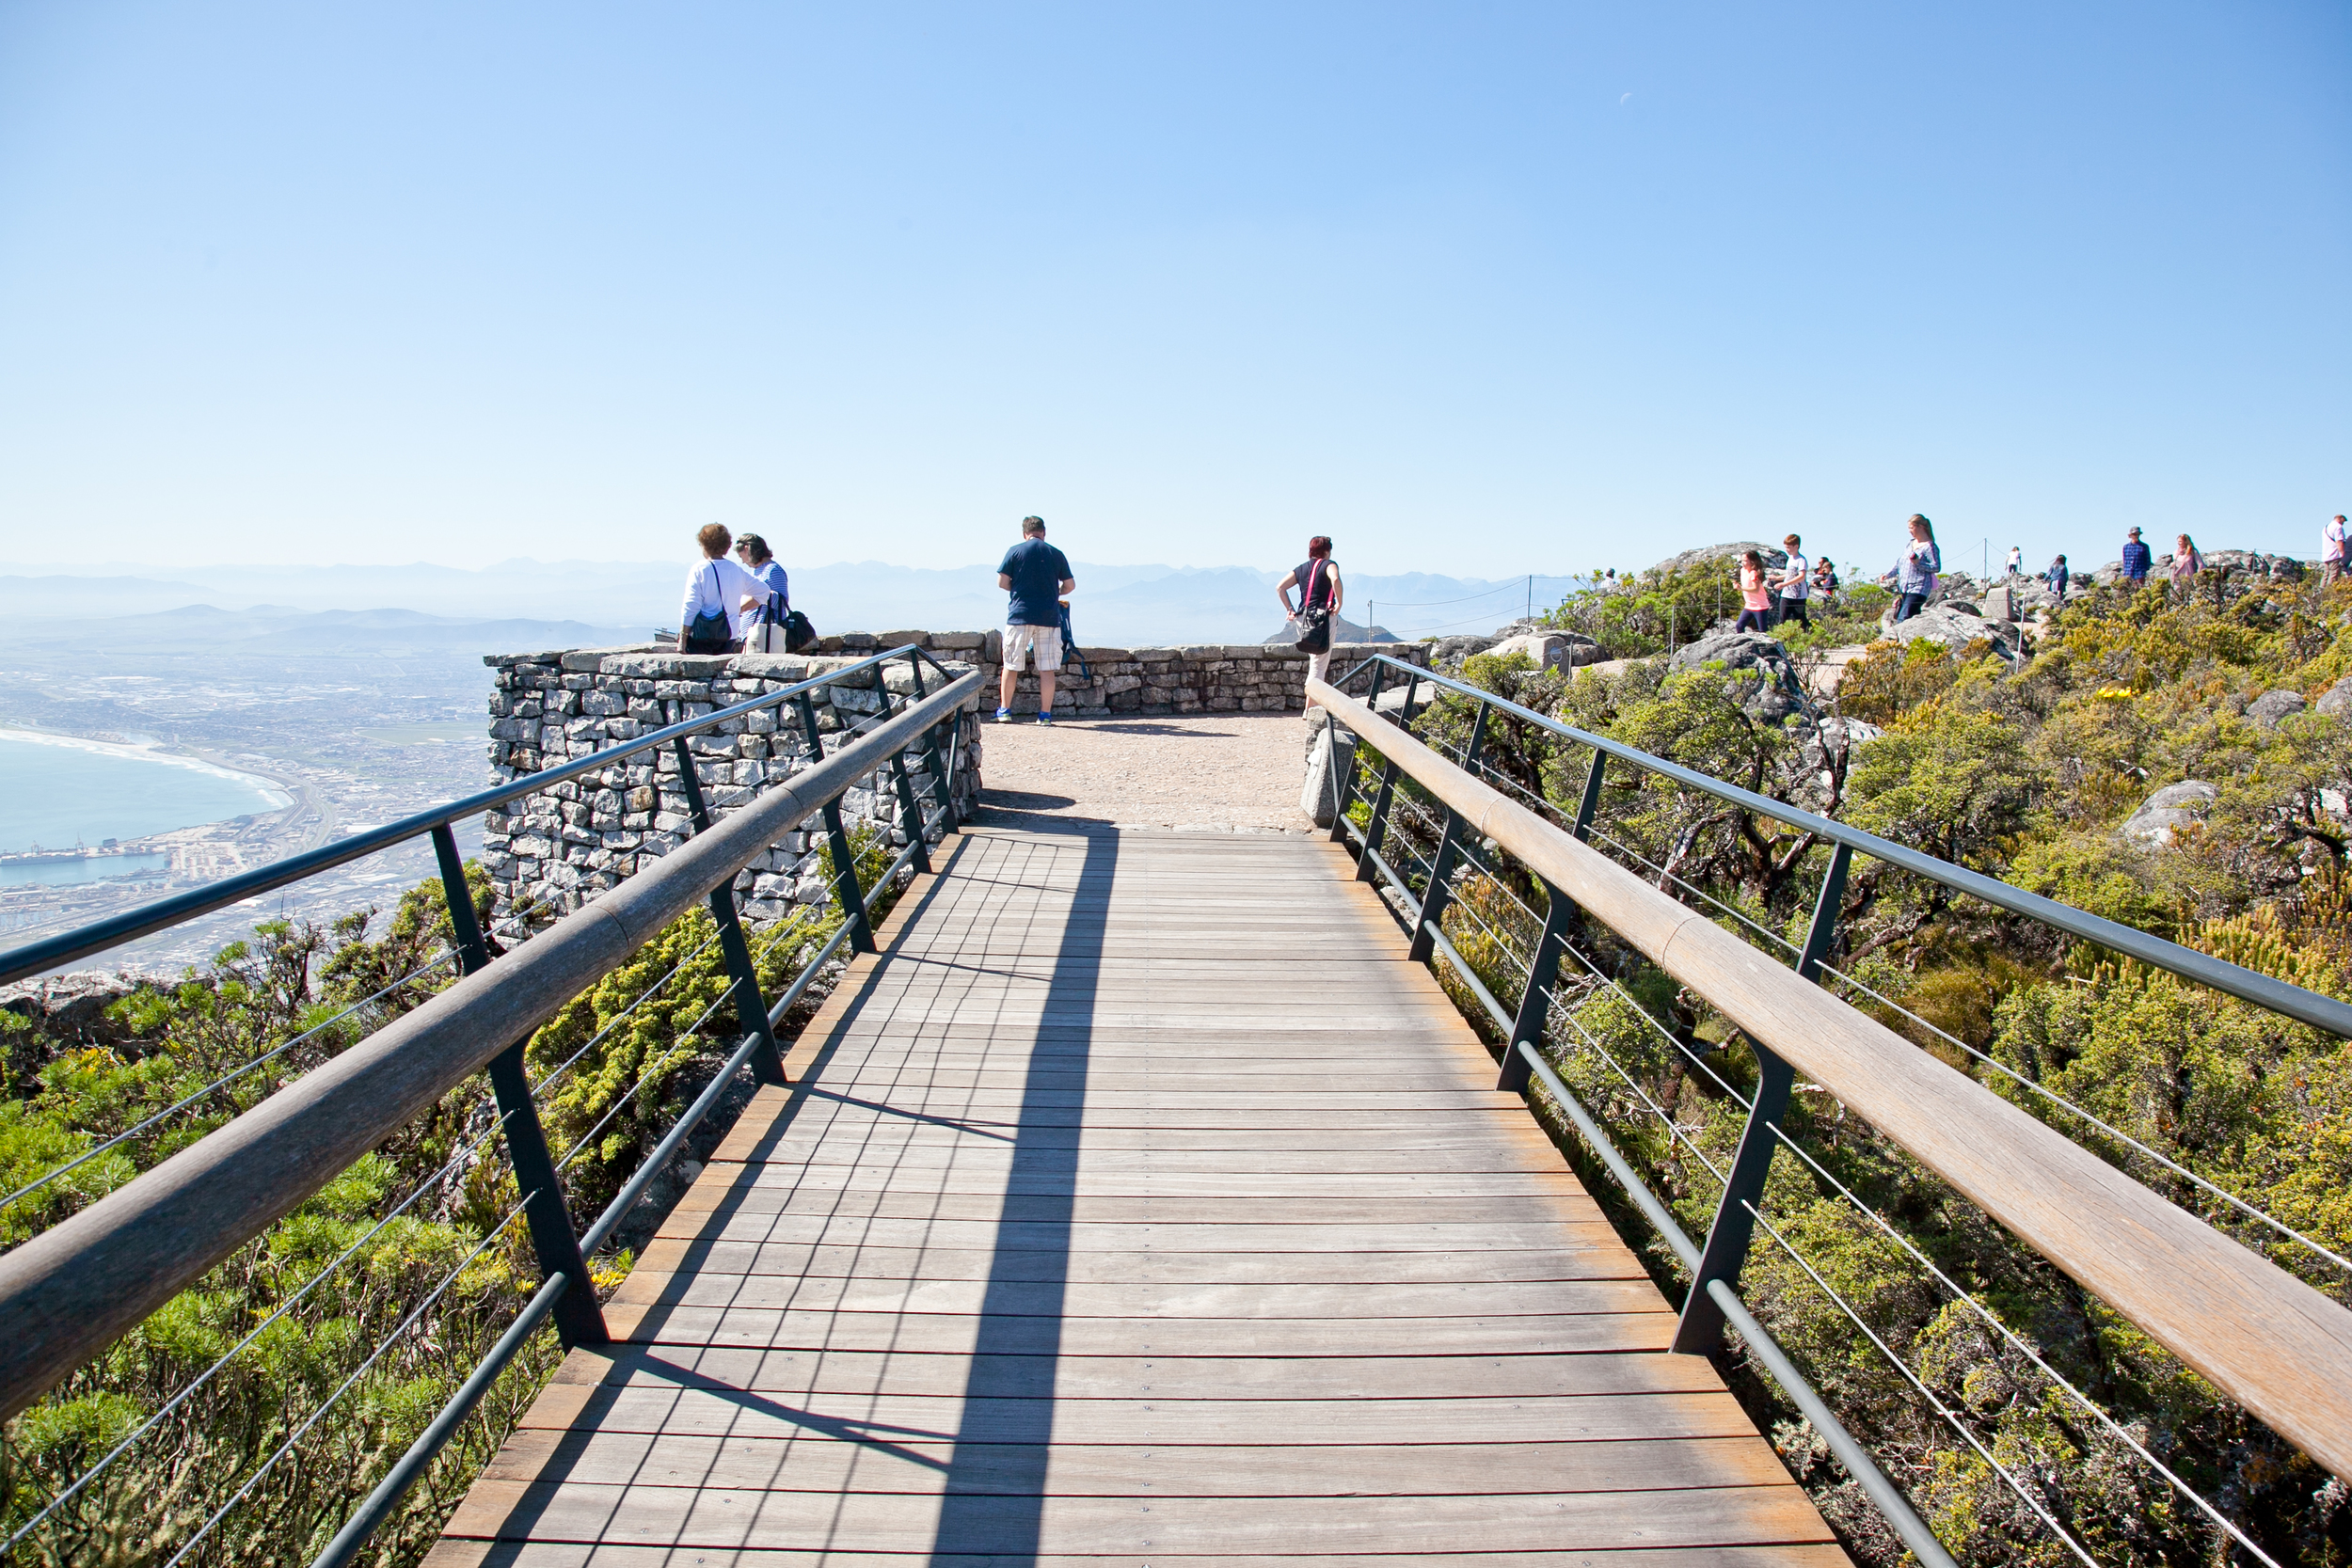 IMG_4666-table-mountain-cape-town-south-africa-trisa-taro.jpg